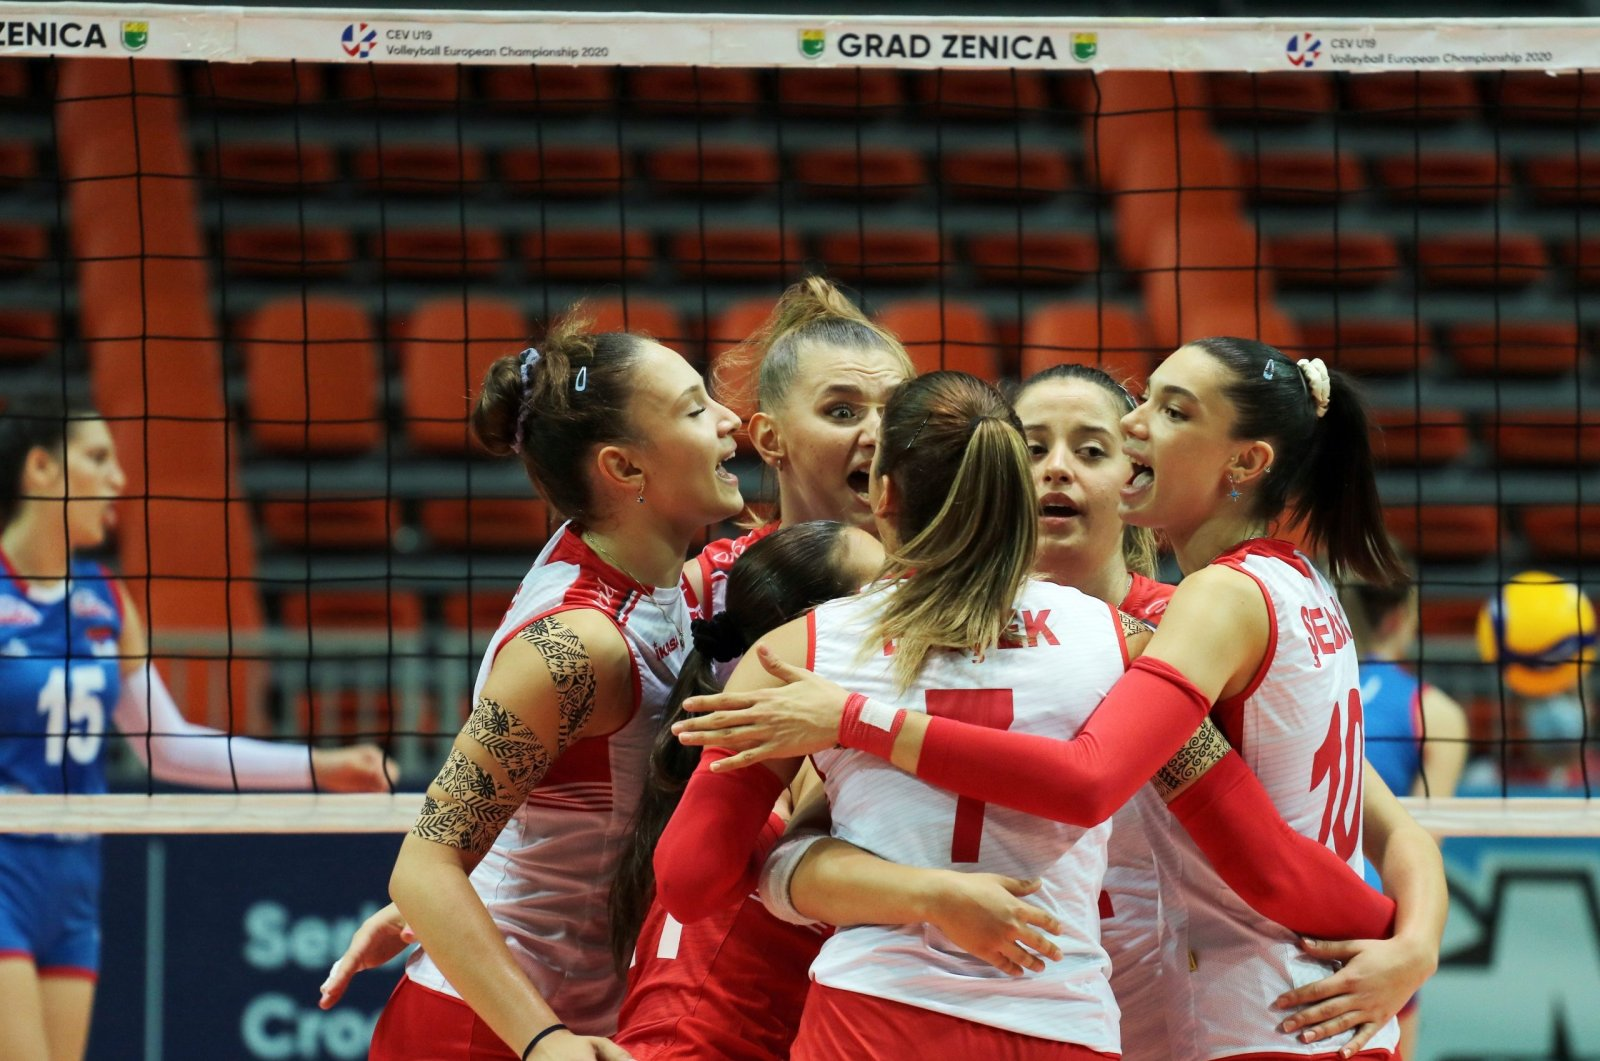 Turkey's U19 women's volleyball team celebrates after defeating Serbia in the CEV final match, in Zenica, Bosnia-Herzegovina, Aug. 30, 2020. (DHA Photo)